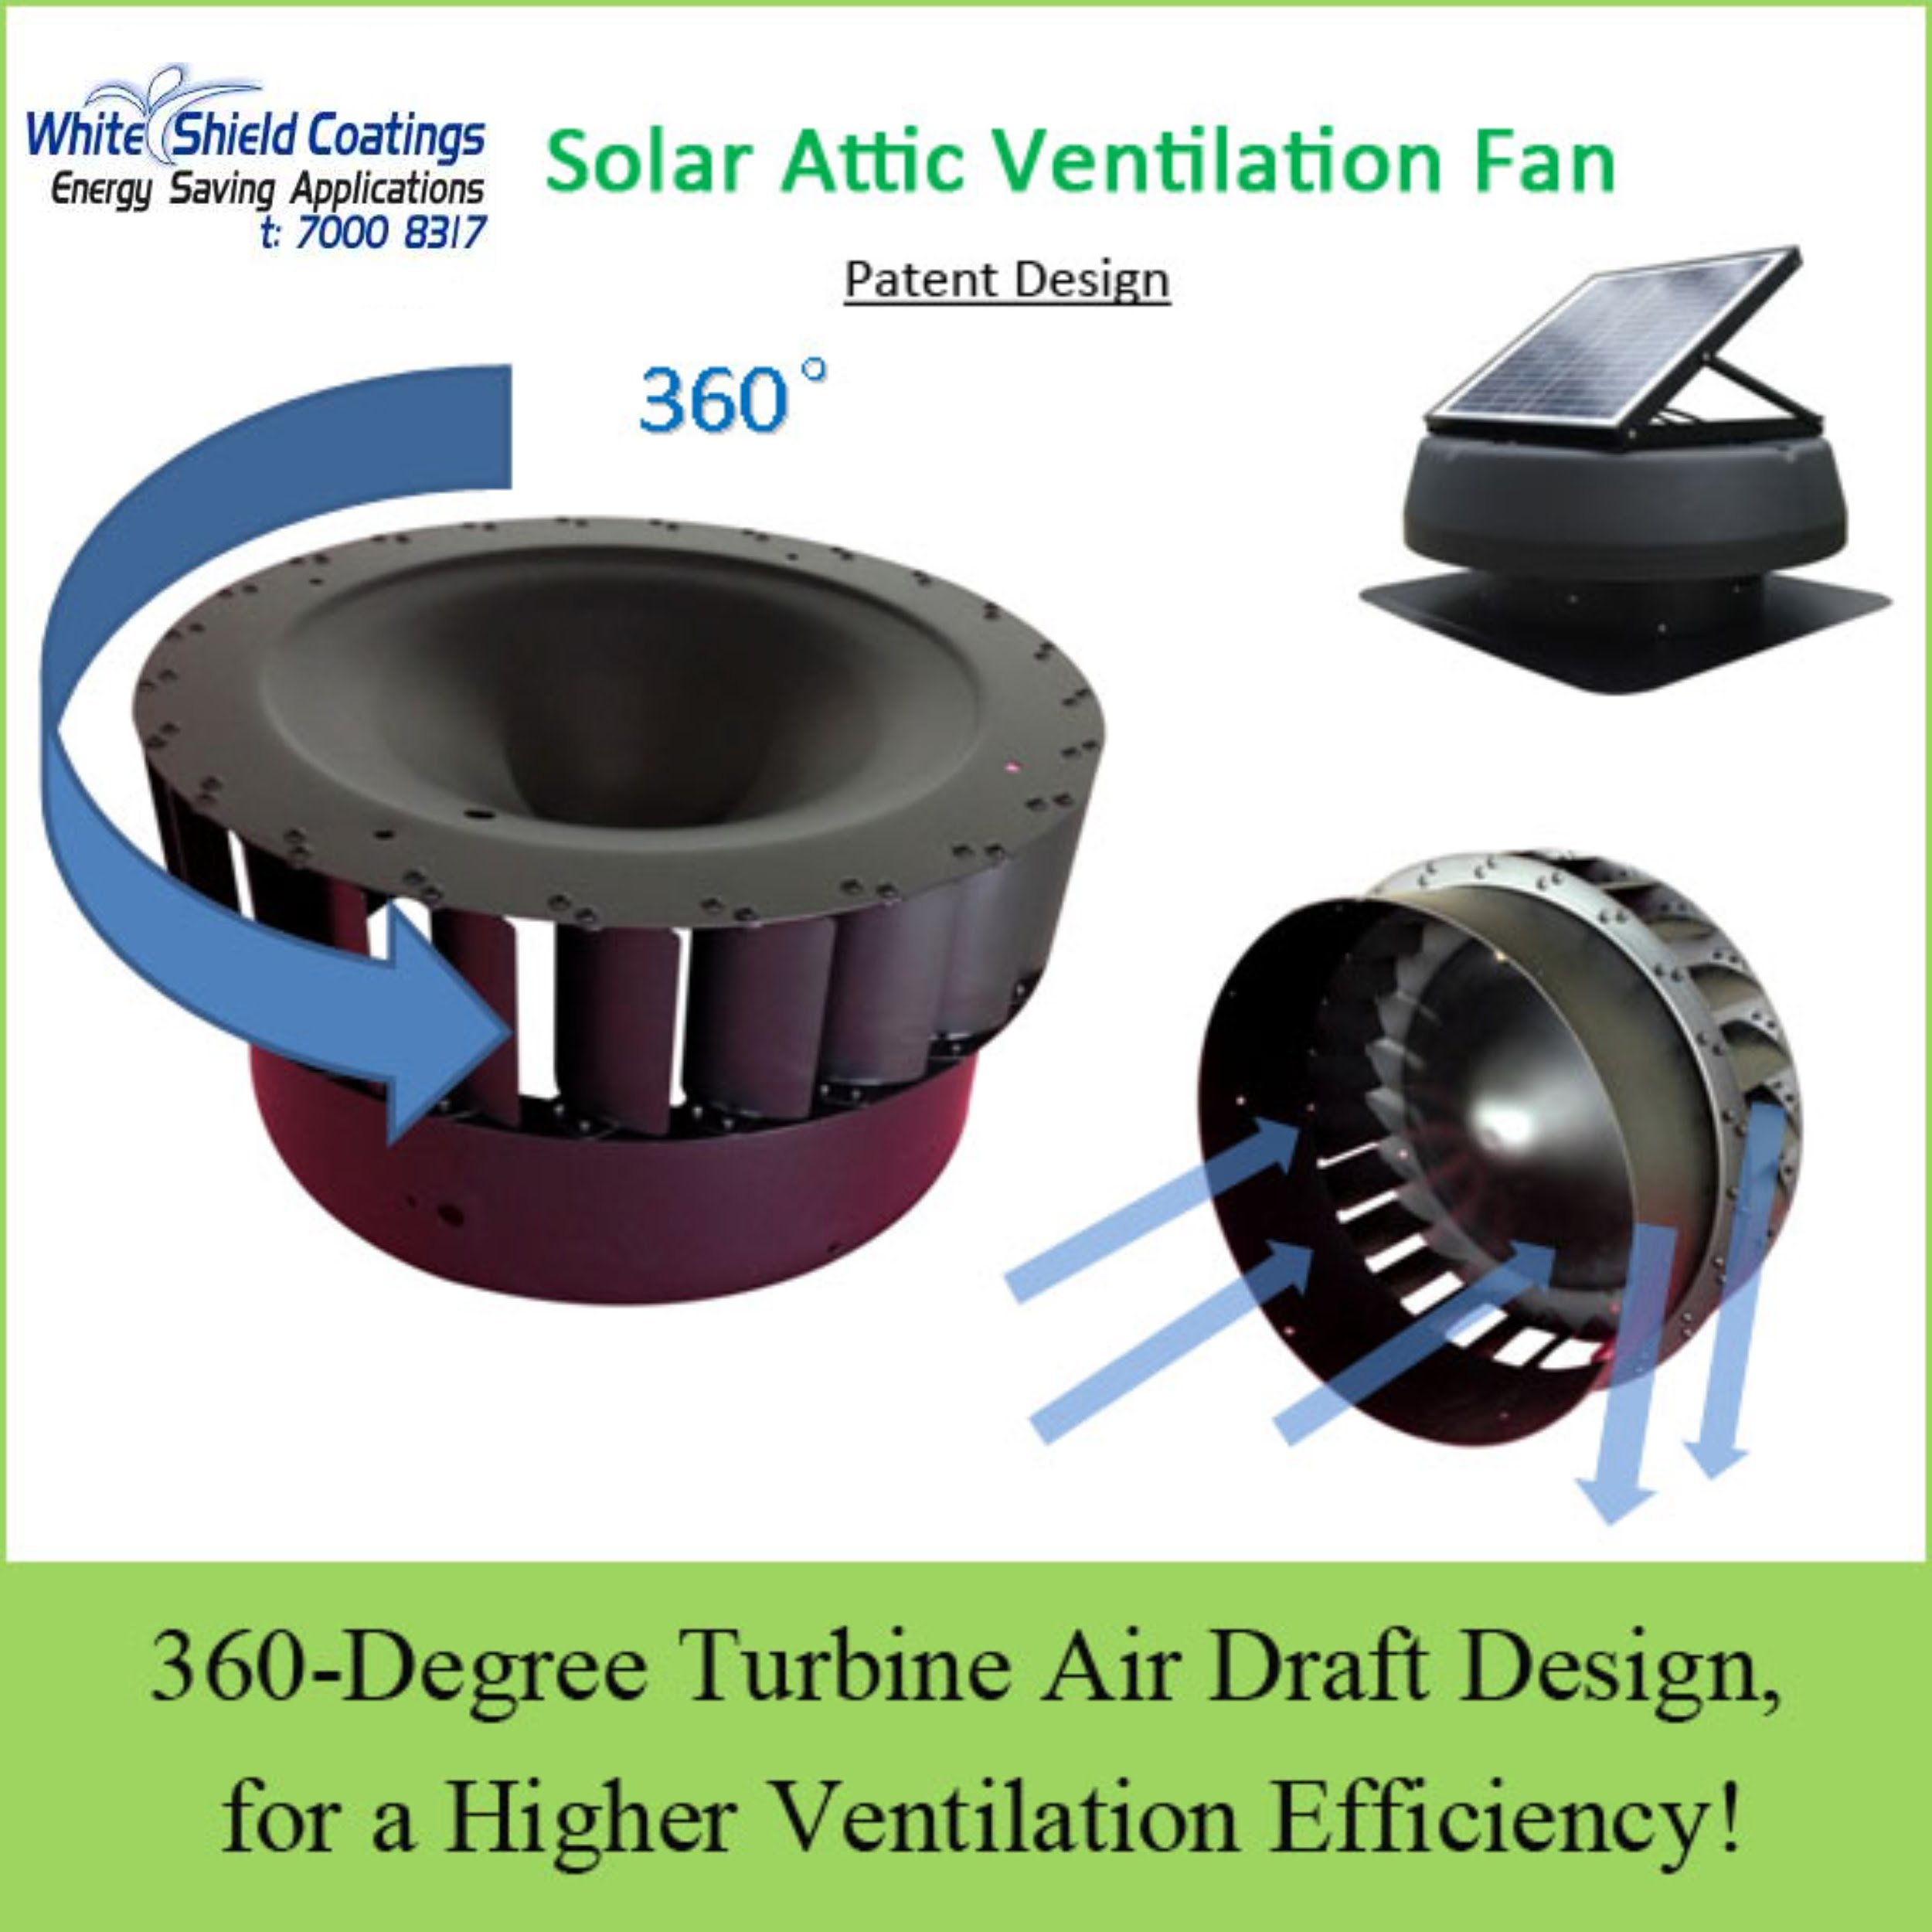 SOLAR ATTIC VENTILATION FAN - WHITE SHIELD COATINGS